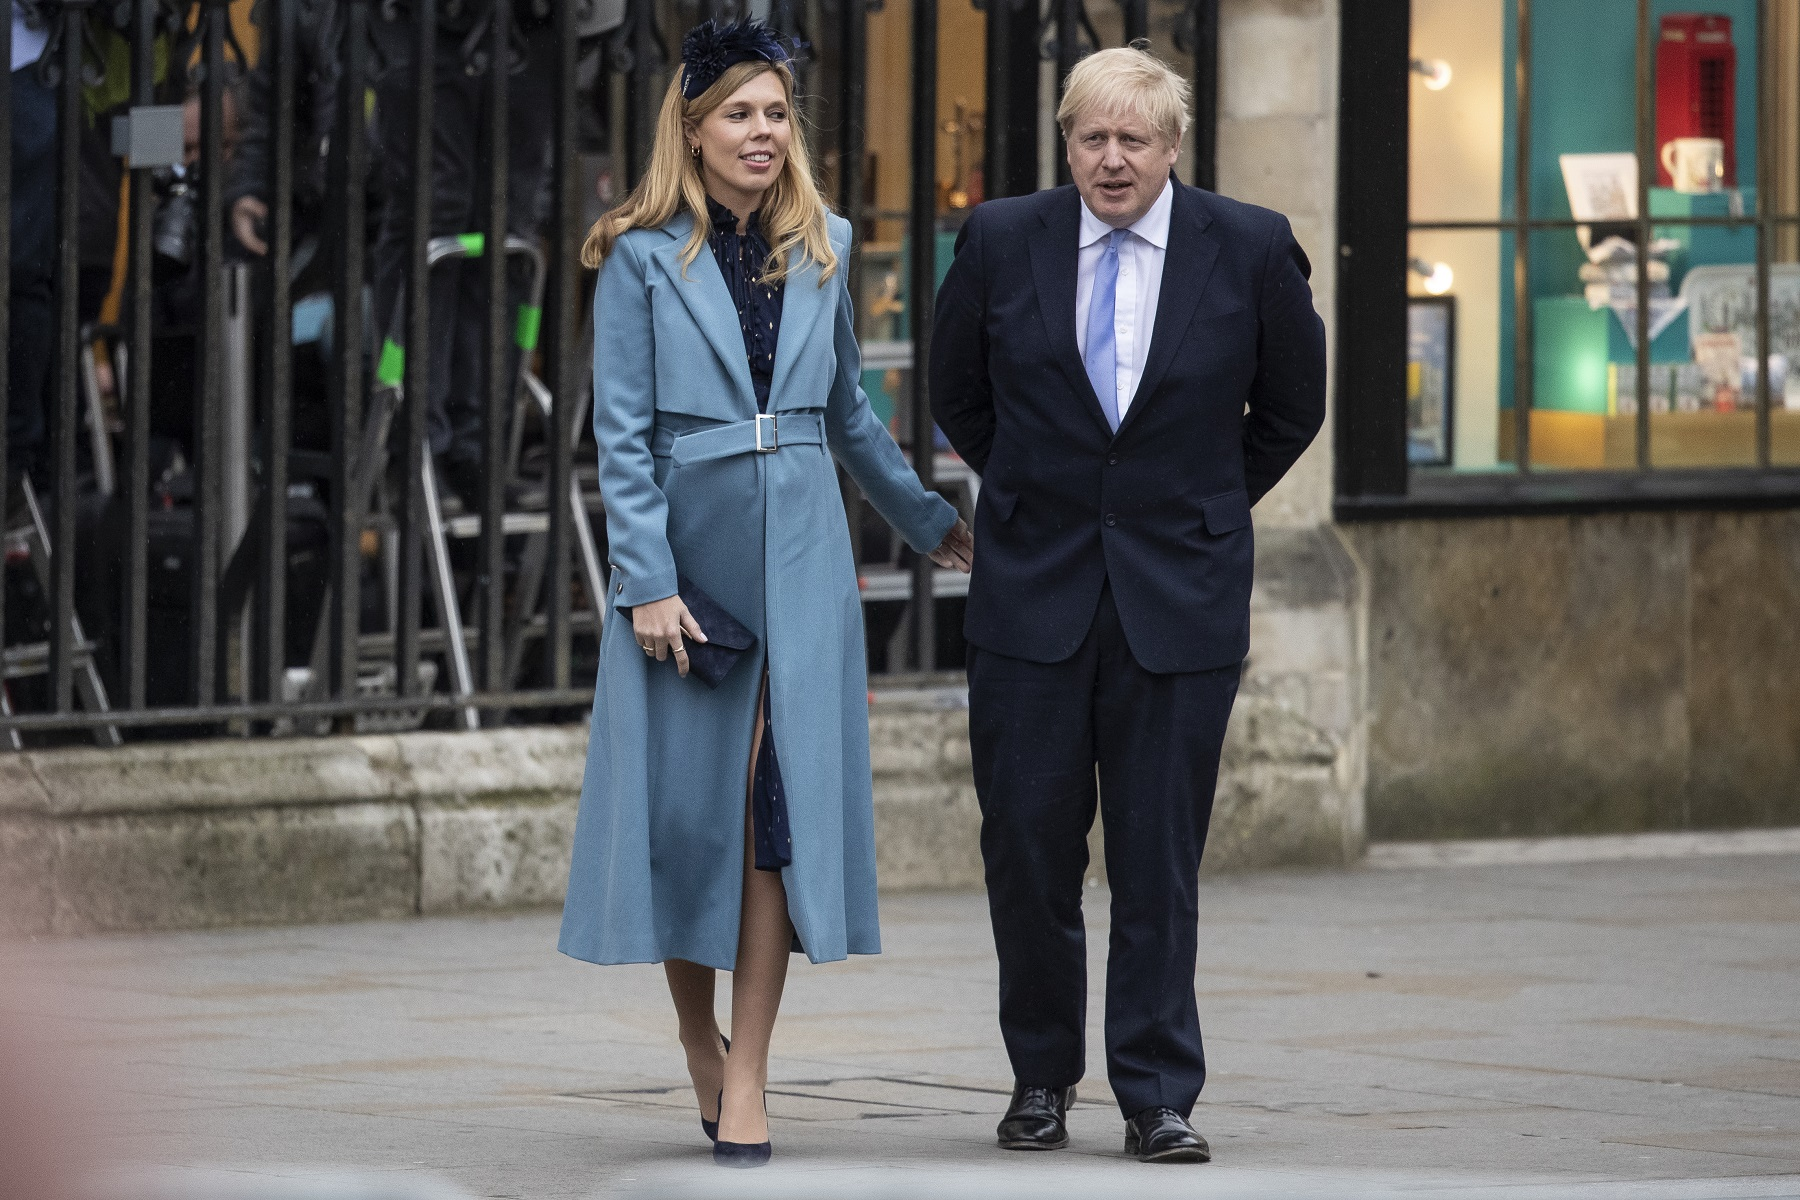 LONDON, ENGLAND - MARCH 09: Prime Minister Boris Johnson and Carrie Symonds leave after attending the annual Commonwealth Day Service at Westminster Abbey on March 9, 2020 in London, England. (Photo by Dan Kitwood/Getty Images)